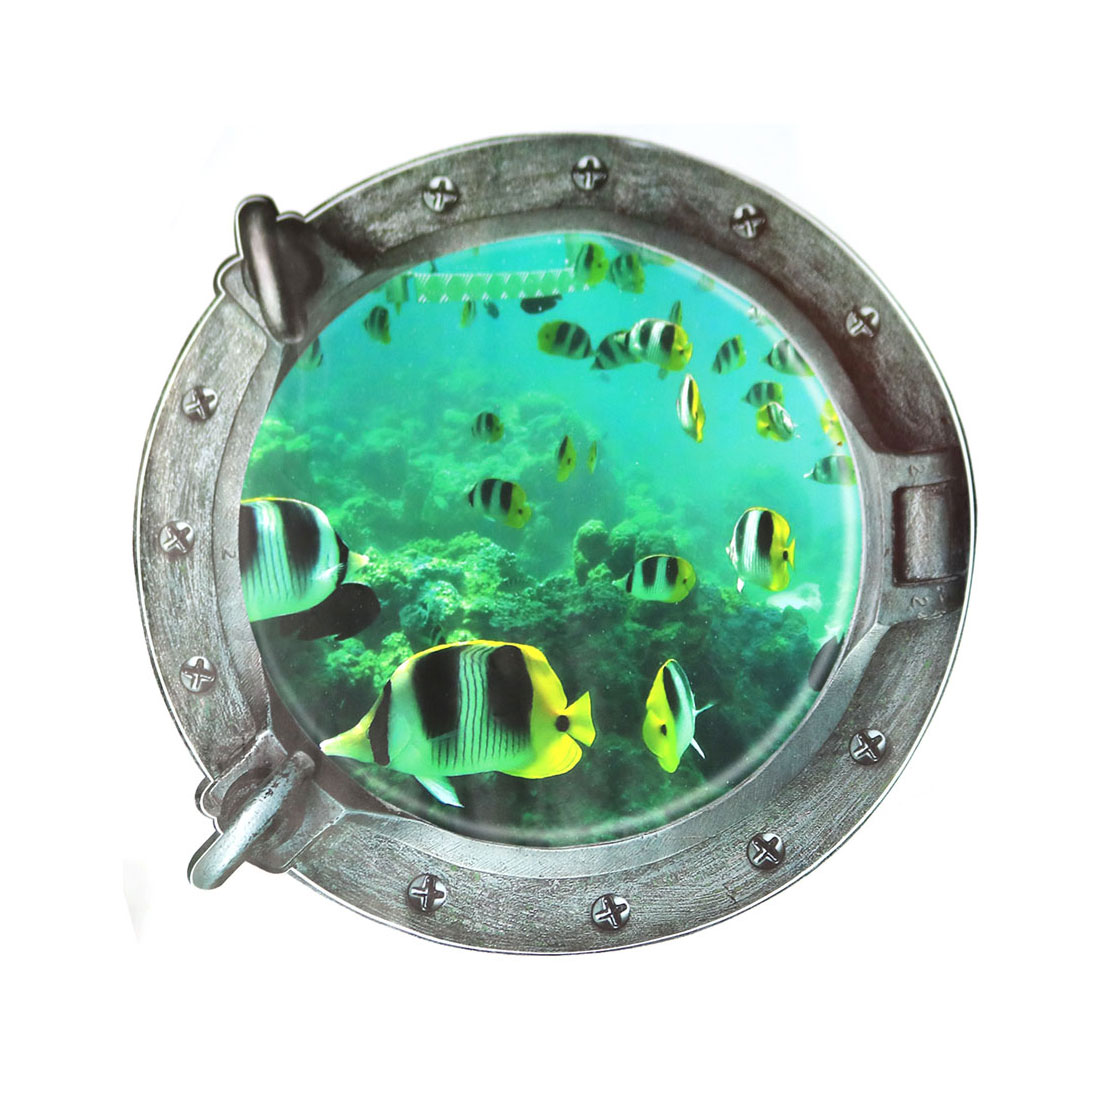 3D Vinyl Undersea World Removable DIY Home Living Room Decor Wall Art Sticker Decal